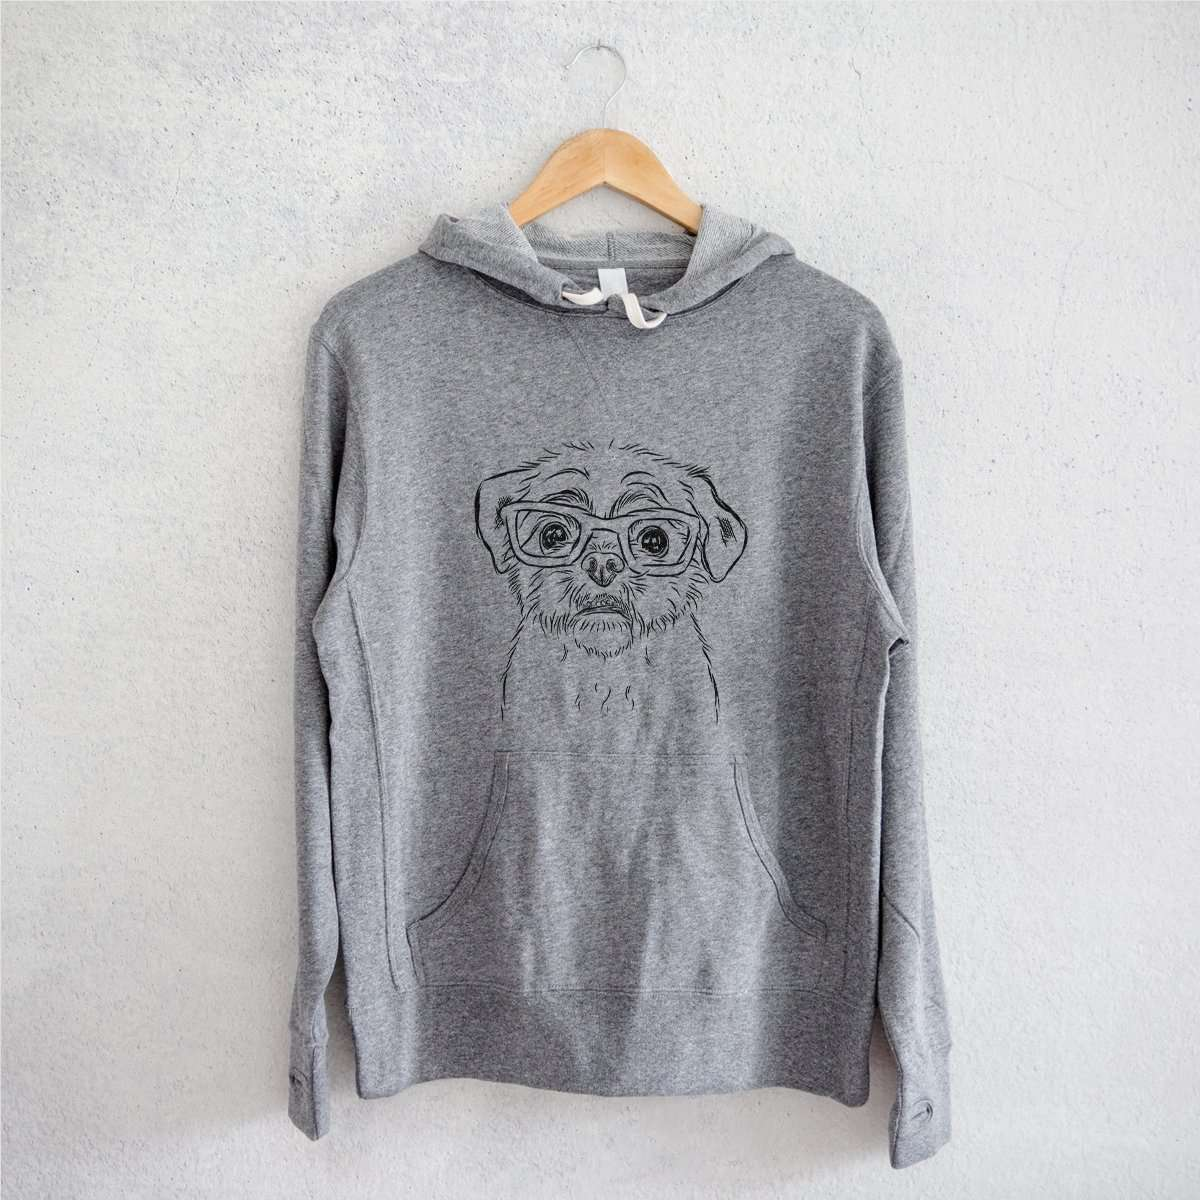 Smash the Shih Tzu - French Terry Hooded Sweatshirt